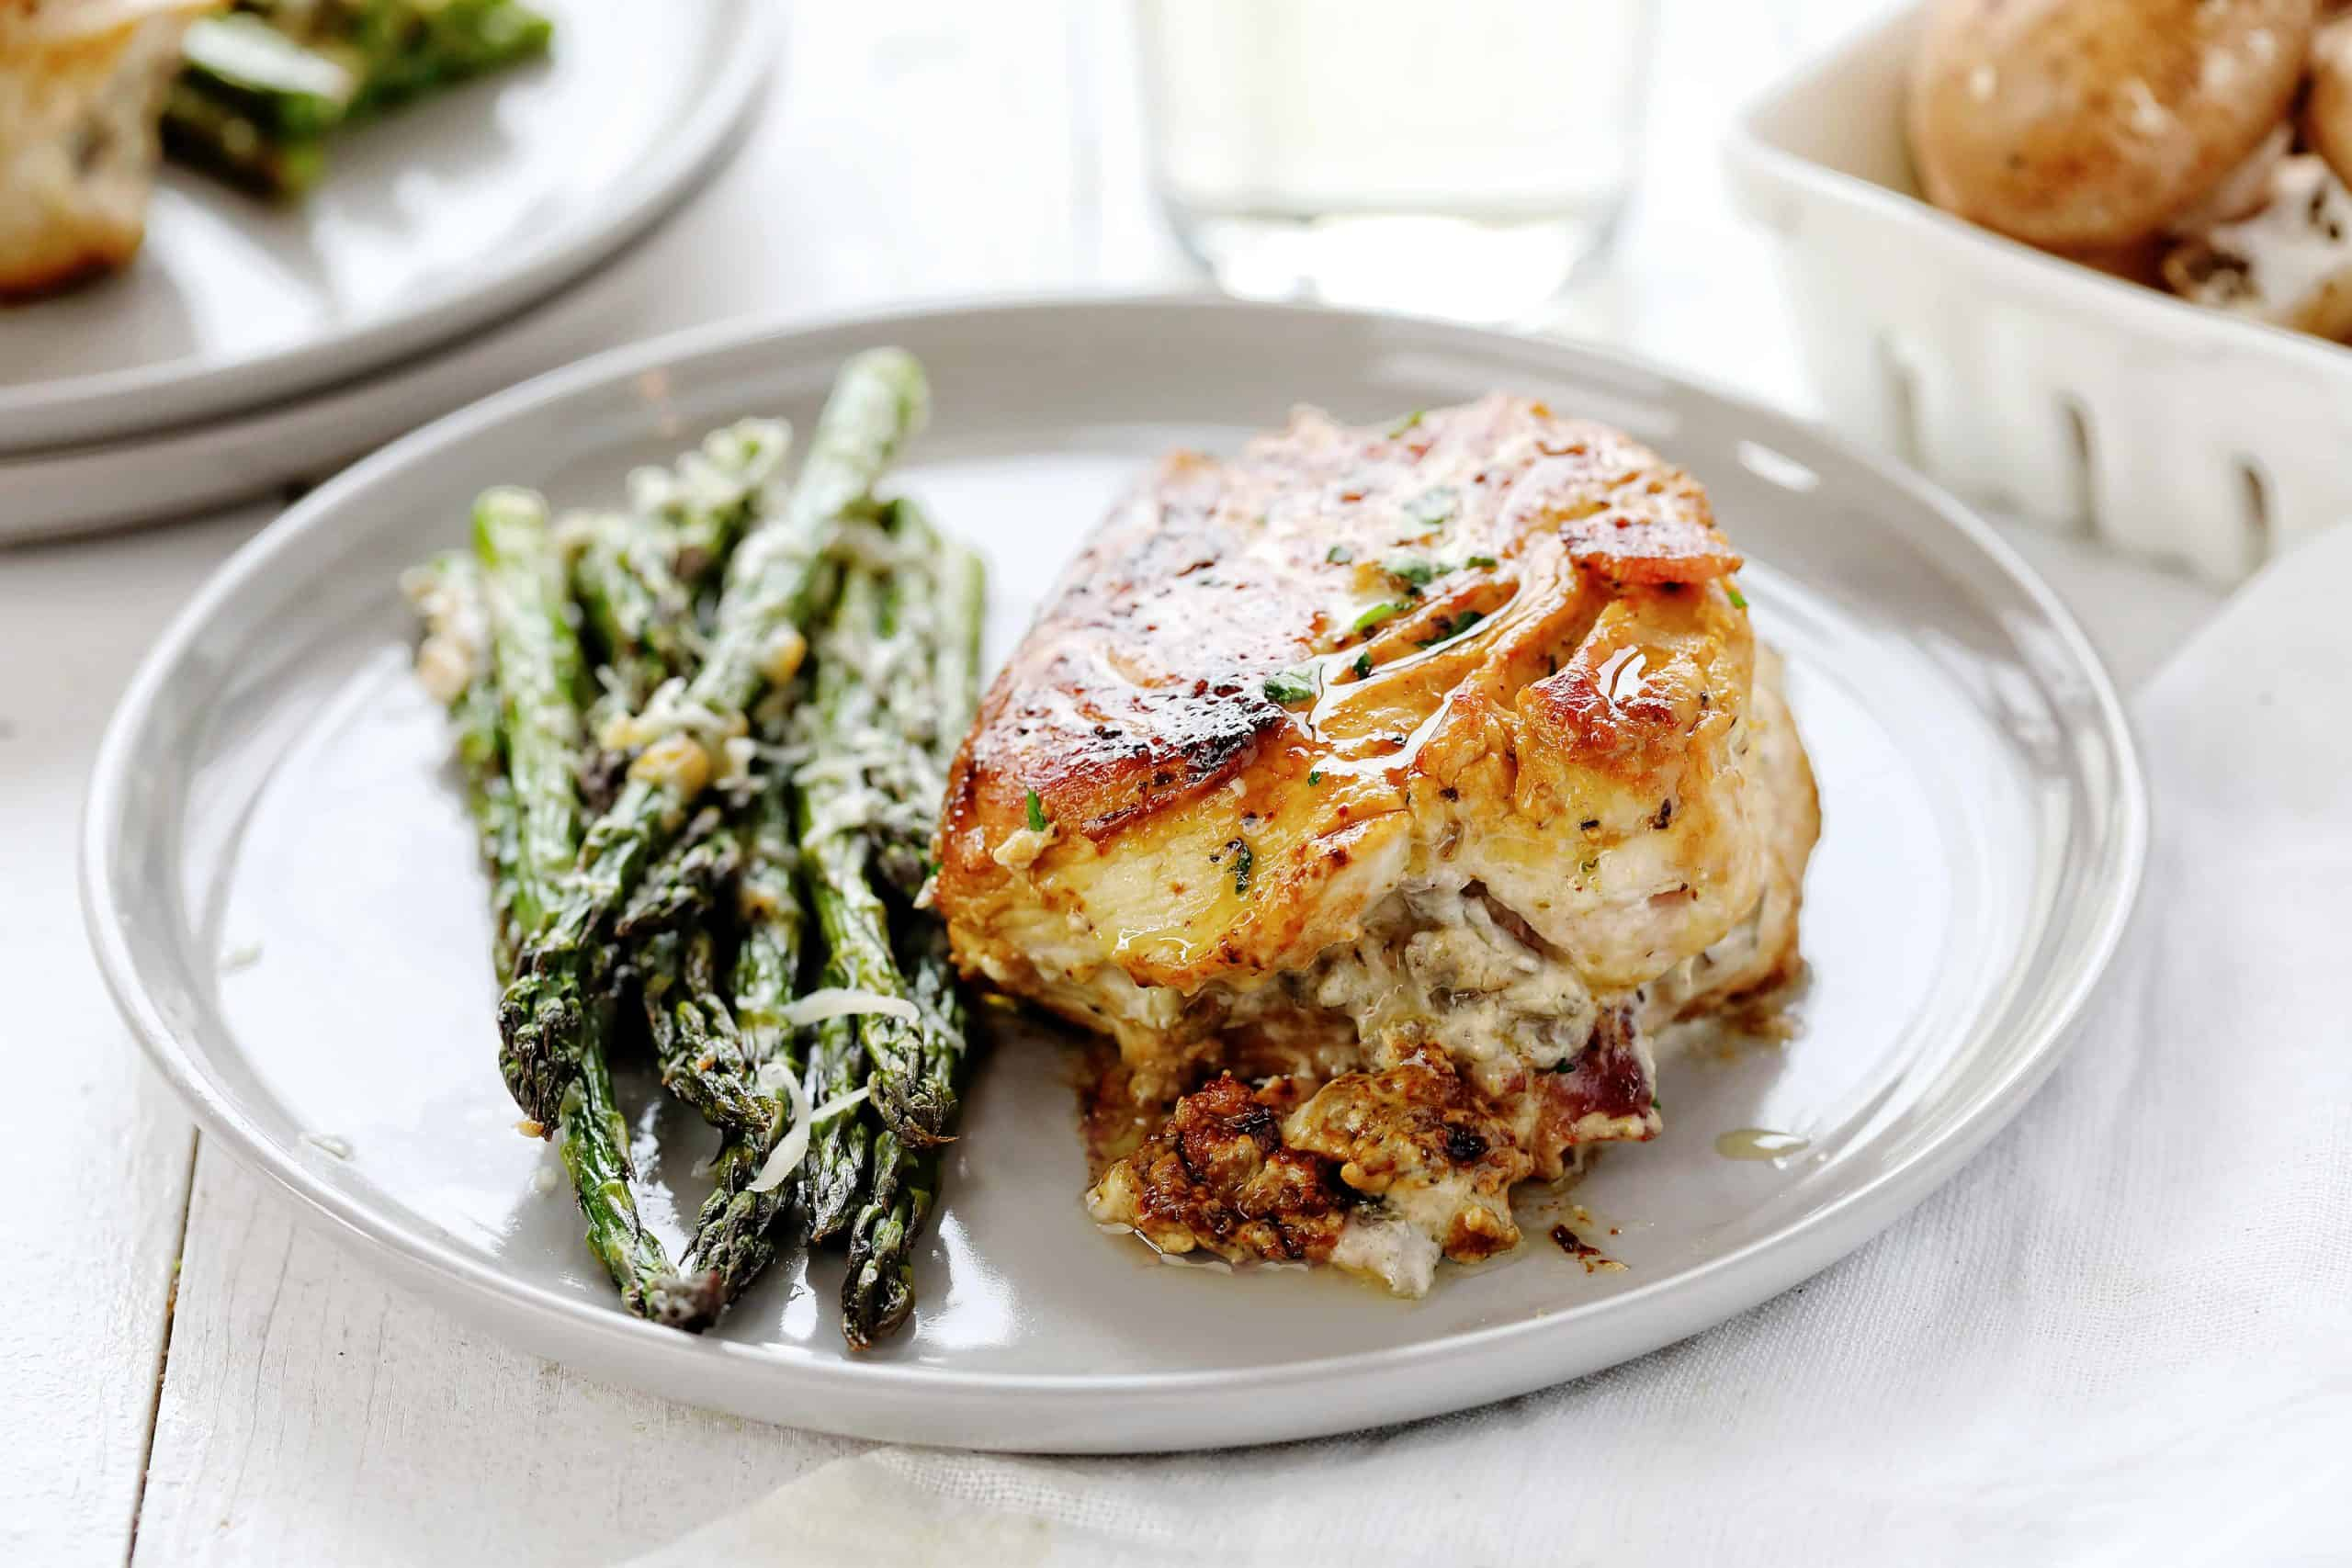 Stuffed Chicken Recipe